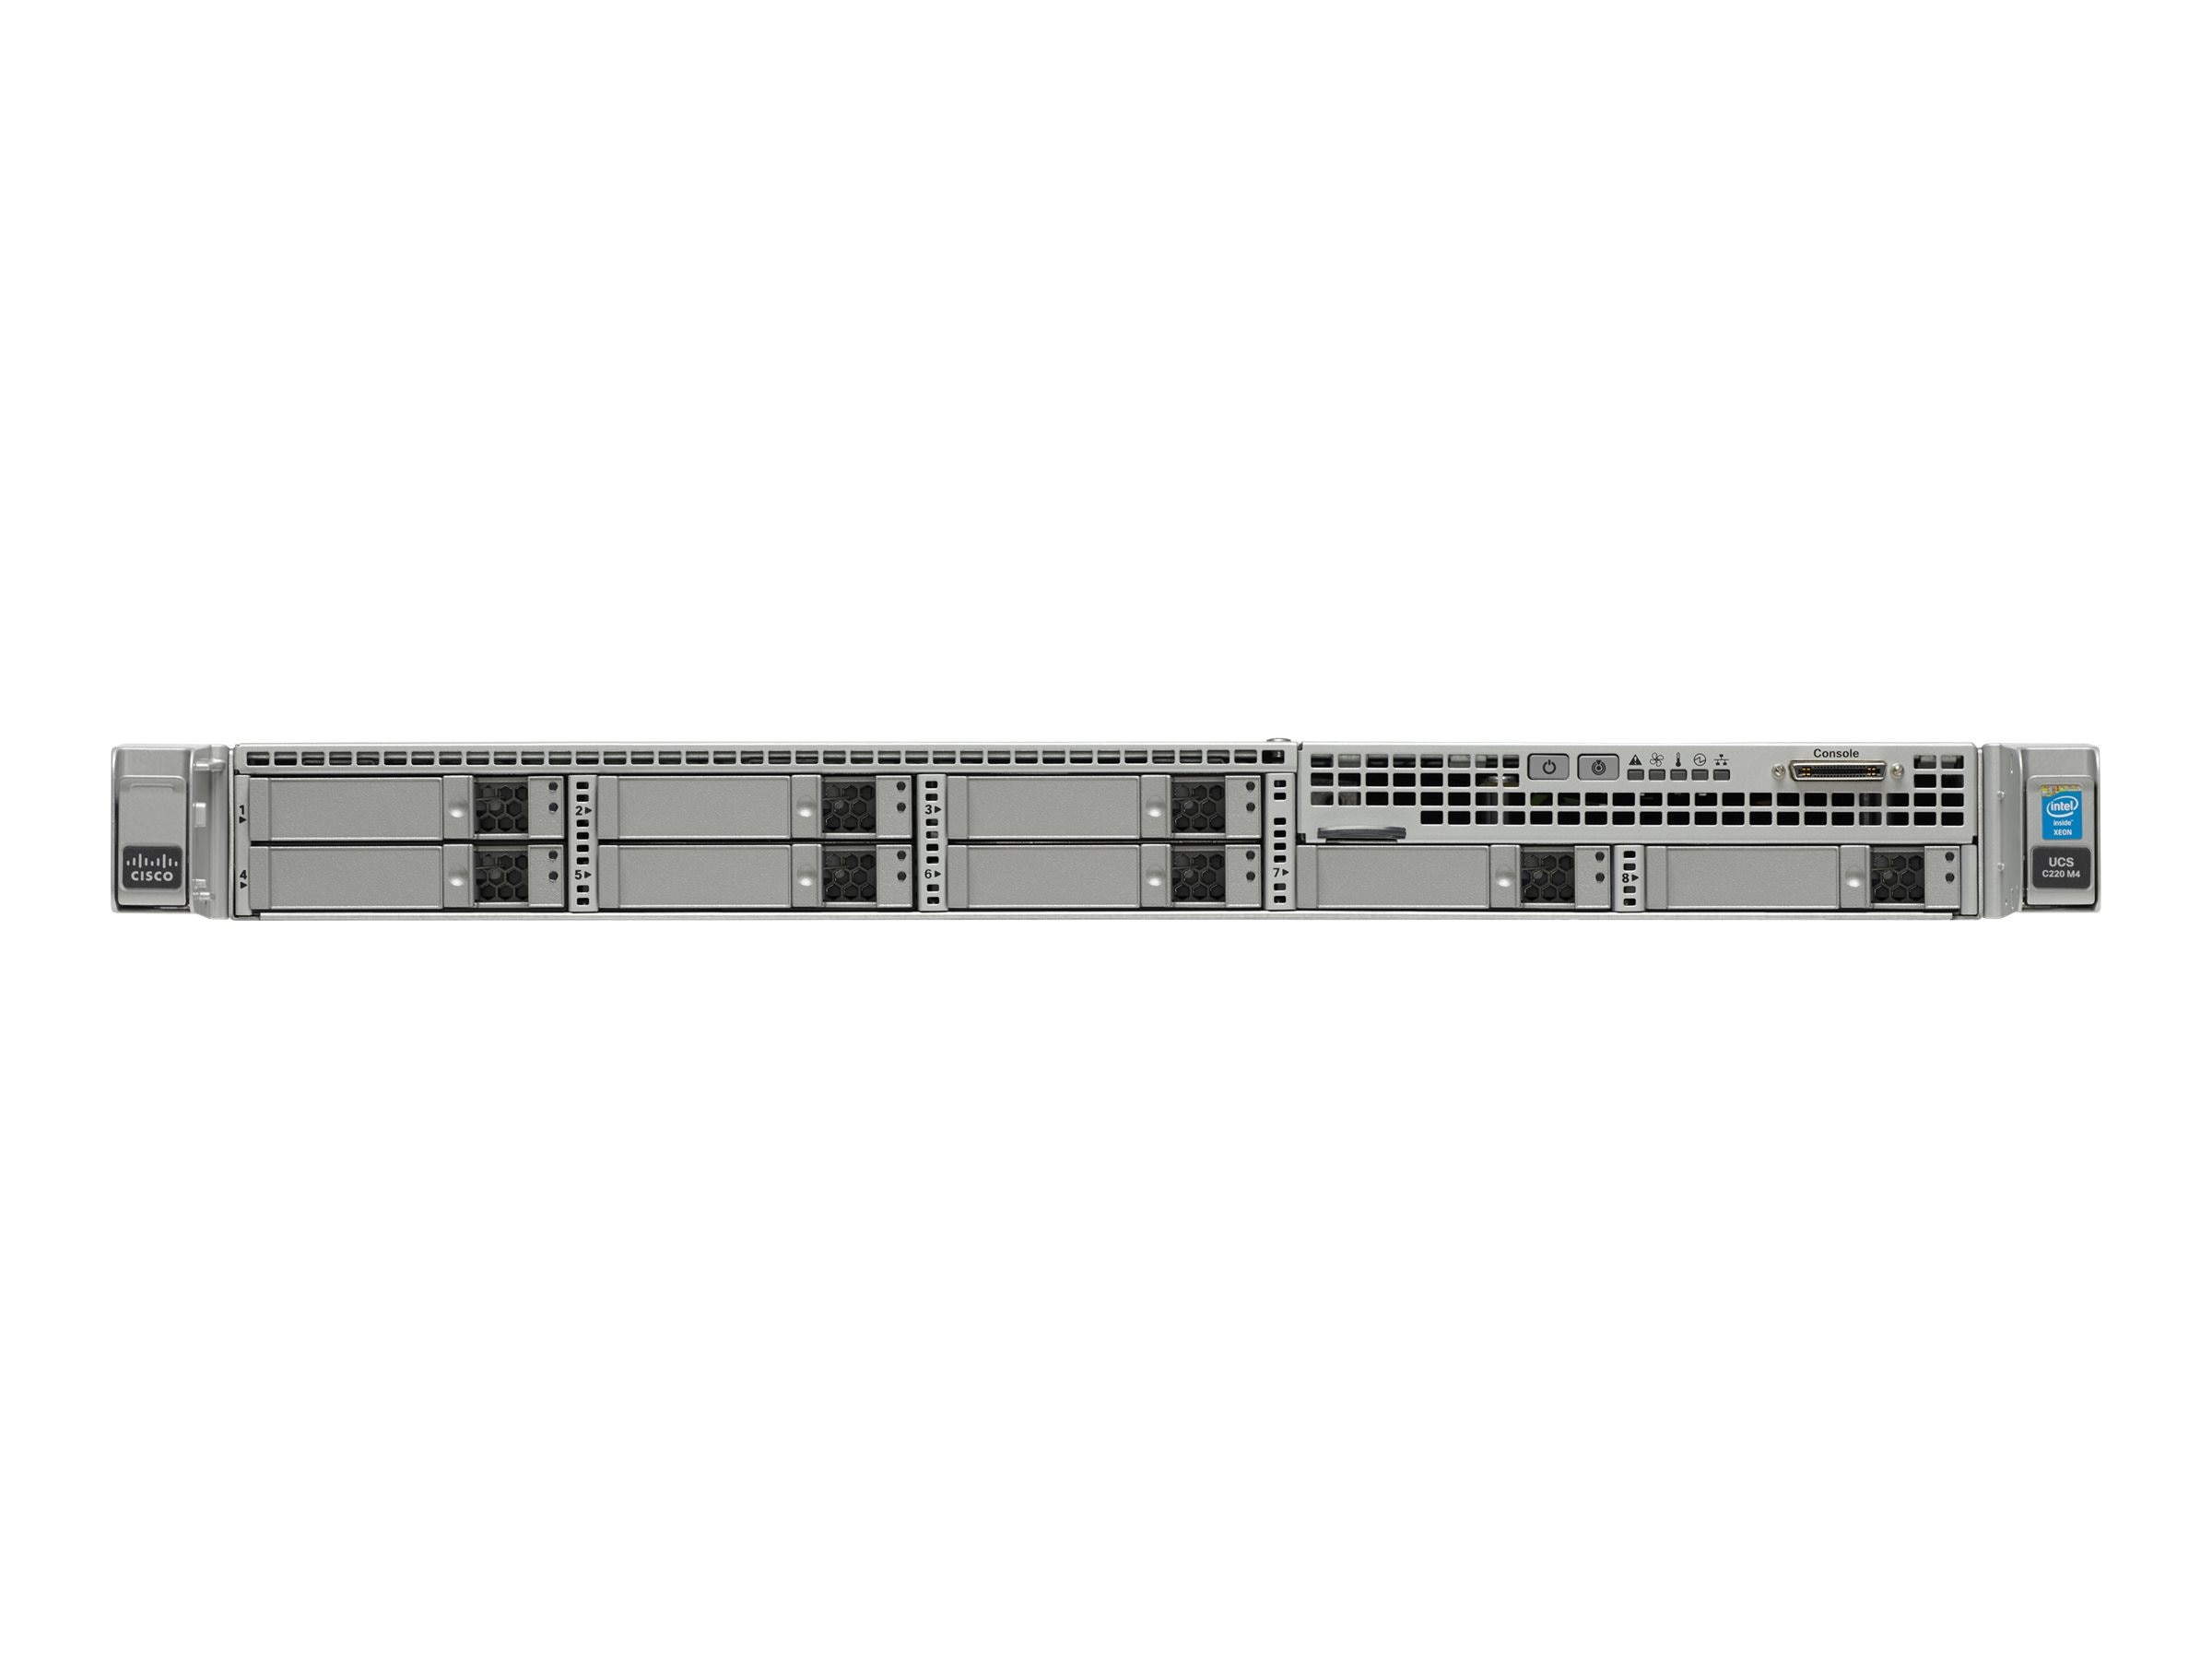 Cisco UCS C220 M4S (2x)E5-2650 v4 2x16GB MRAID 2x770W 32GB SD Rails, UCS-SPR-C220M4-BV2